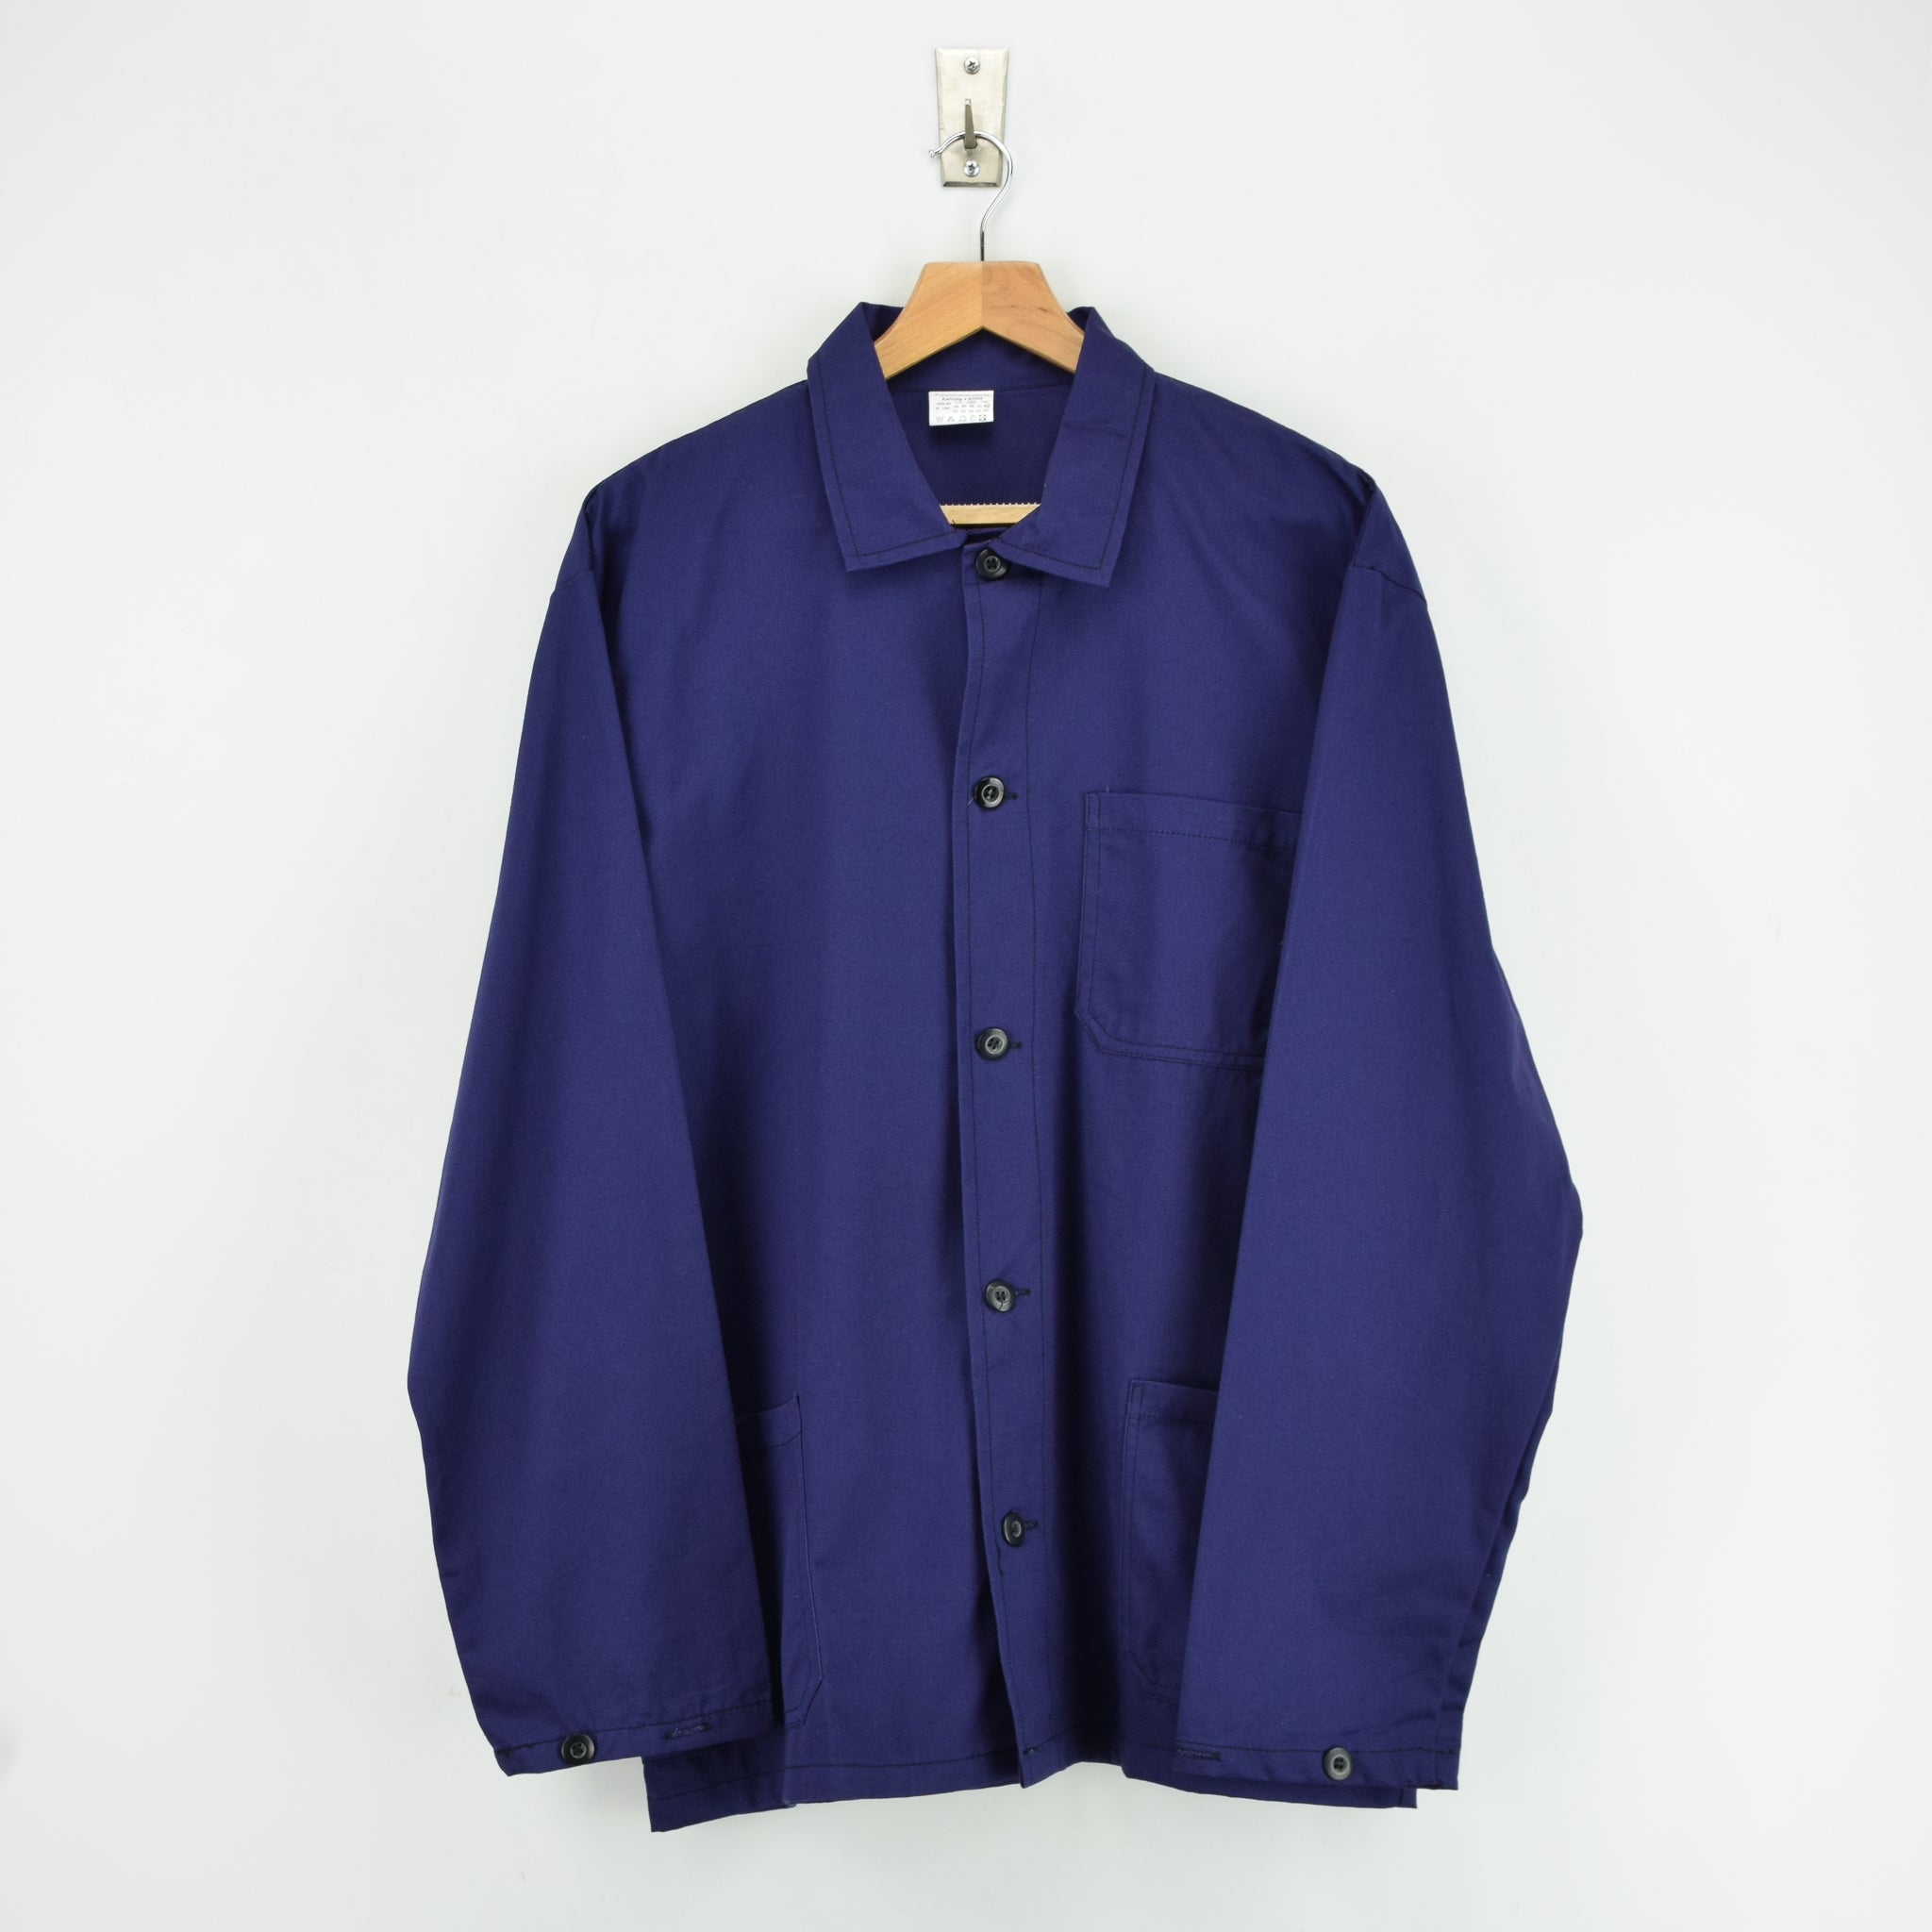 Vintage Blue Purple French Style Worker Sanforized Cotton Chore Jacket L front